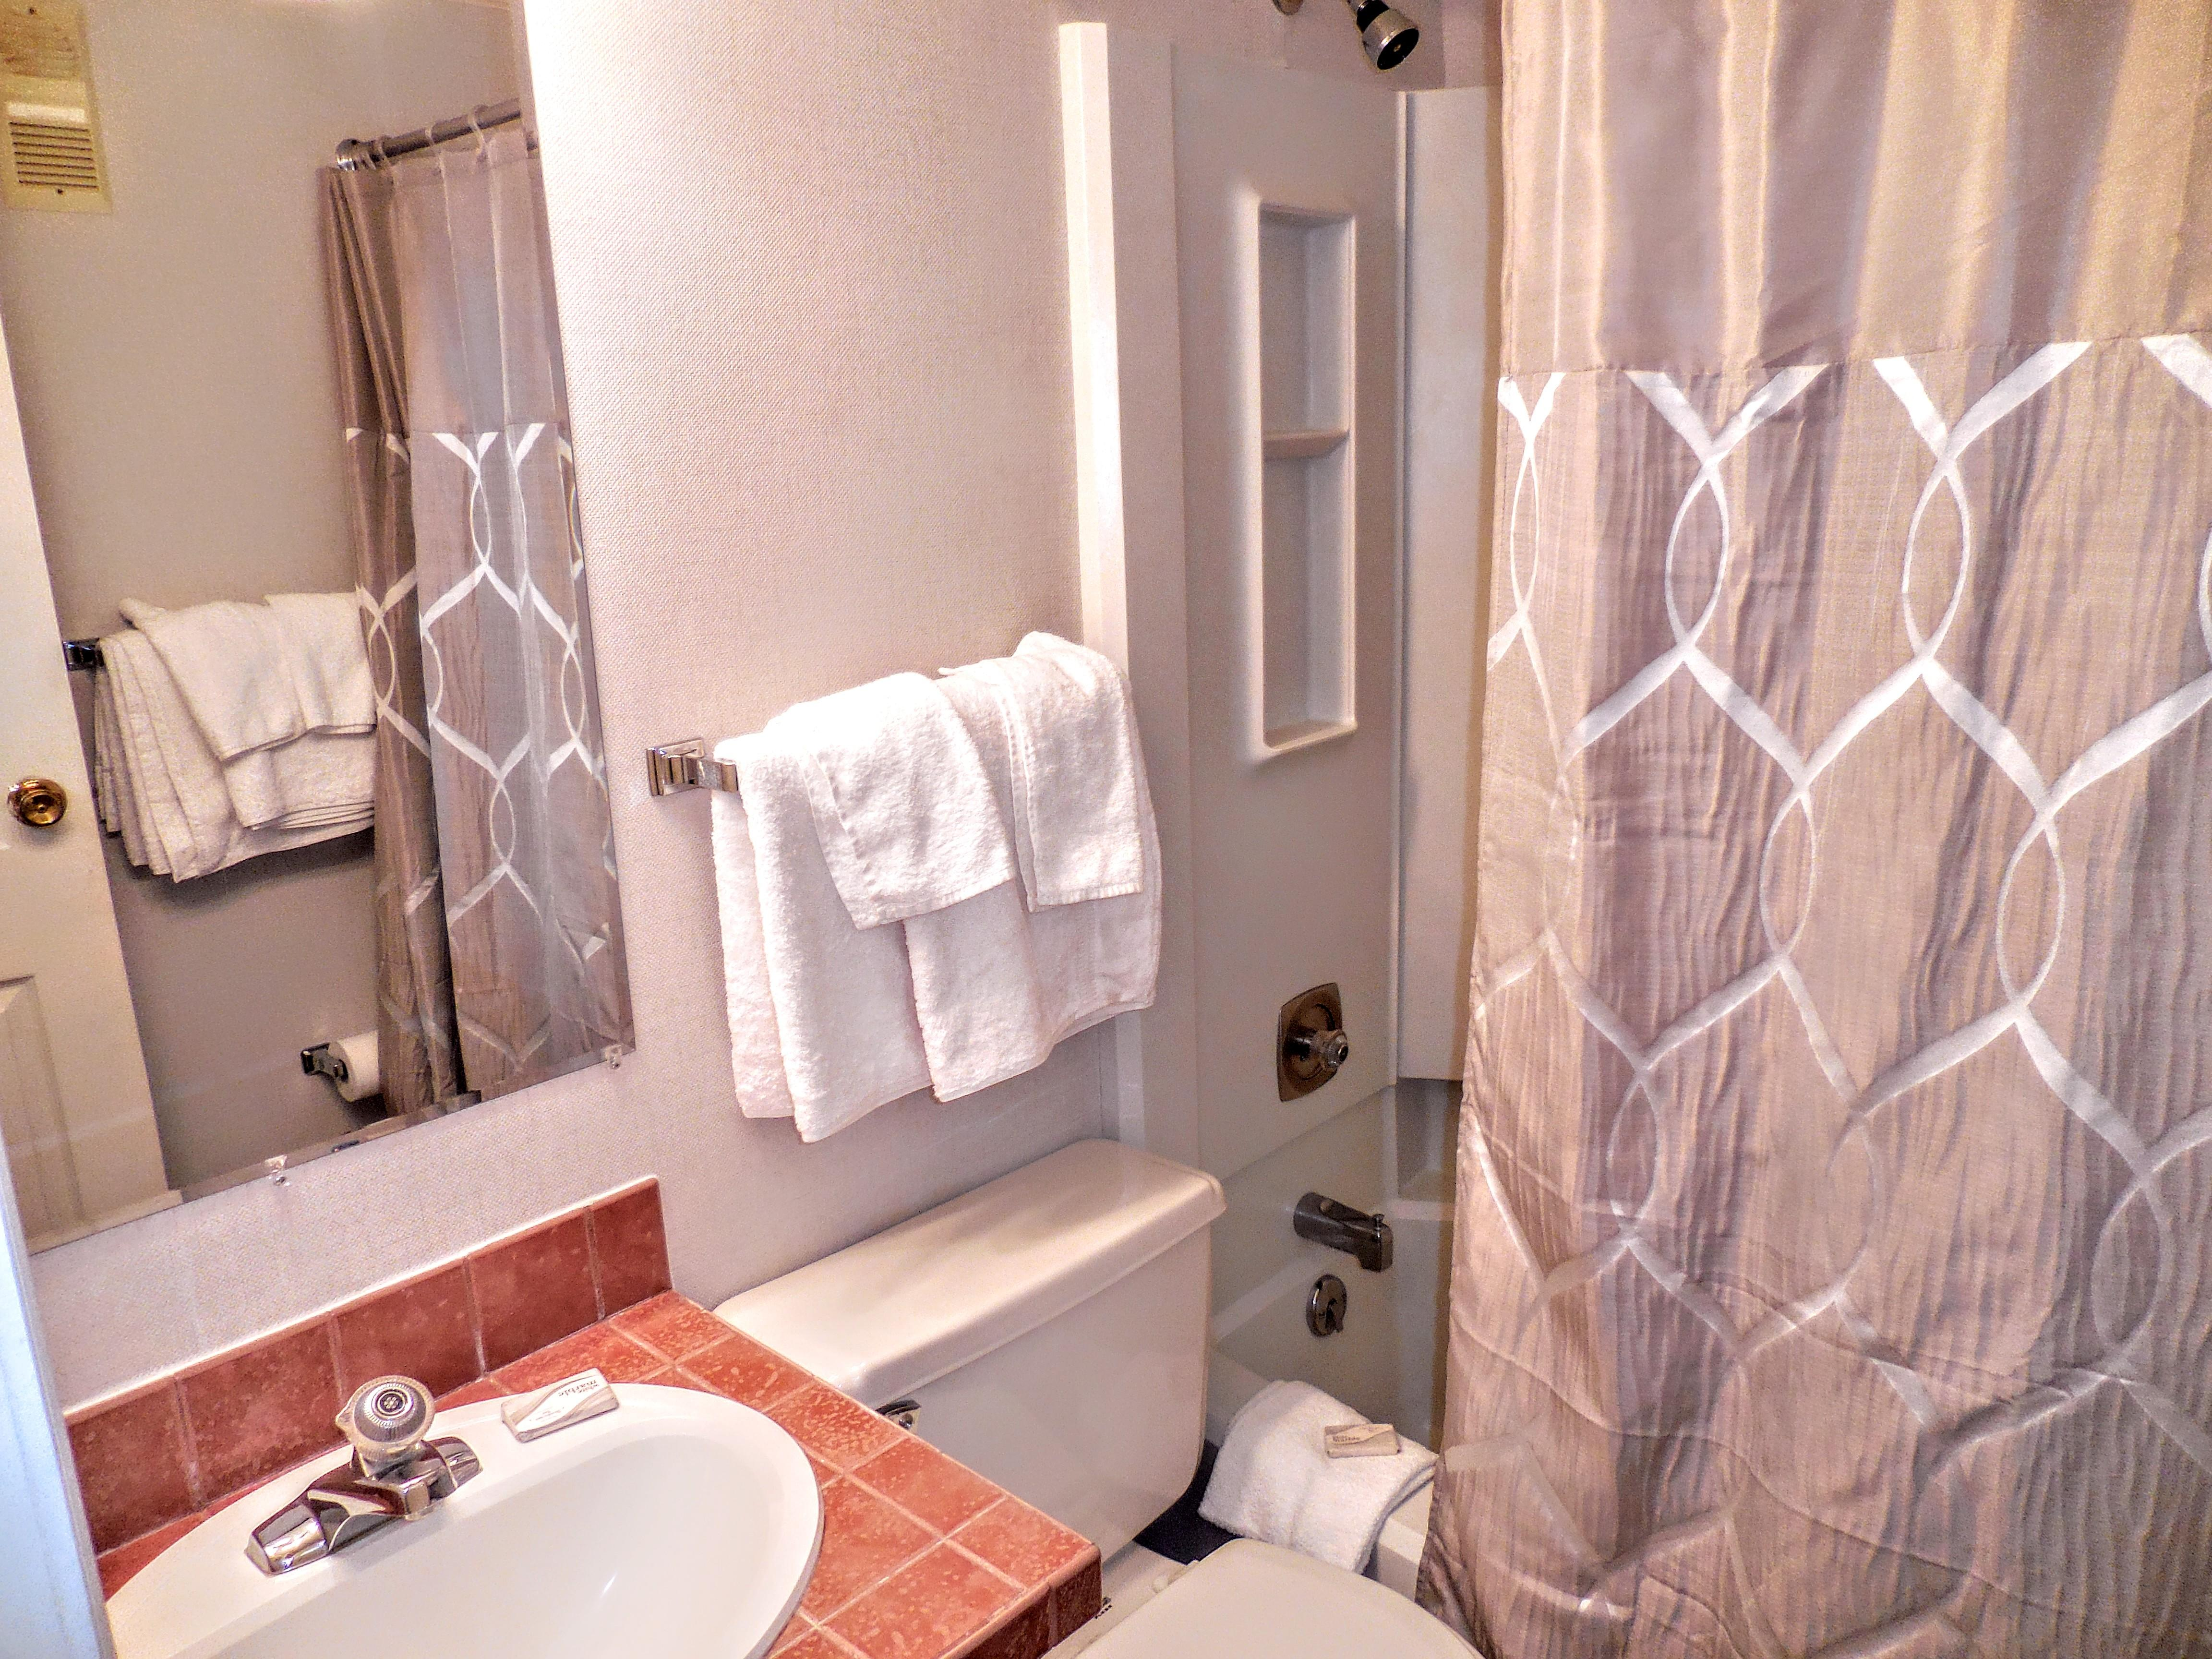 has two beds one of two 2 full sized beds in bedroom 2 one of two 2 full sized beds in bedroom 2 tv with dish network in 2nd bedroom bathroom 2